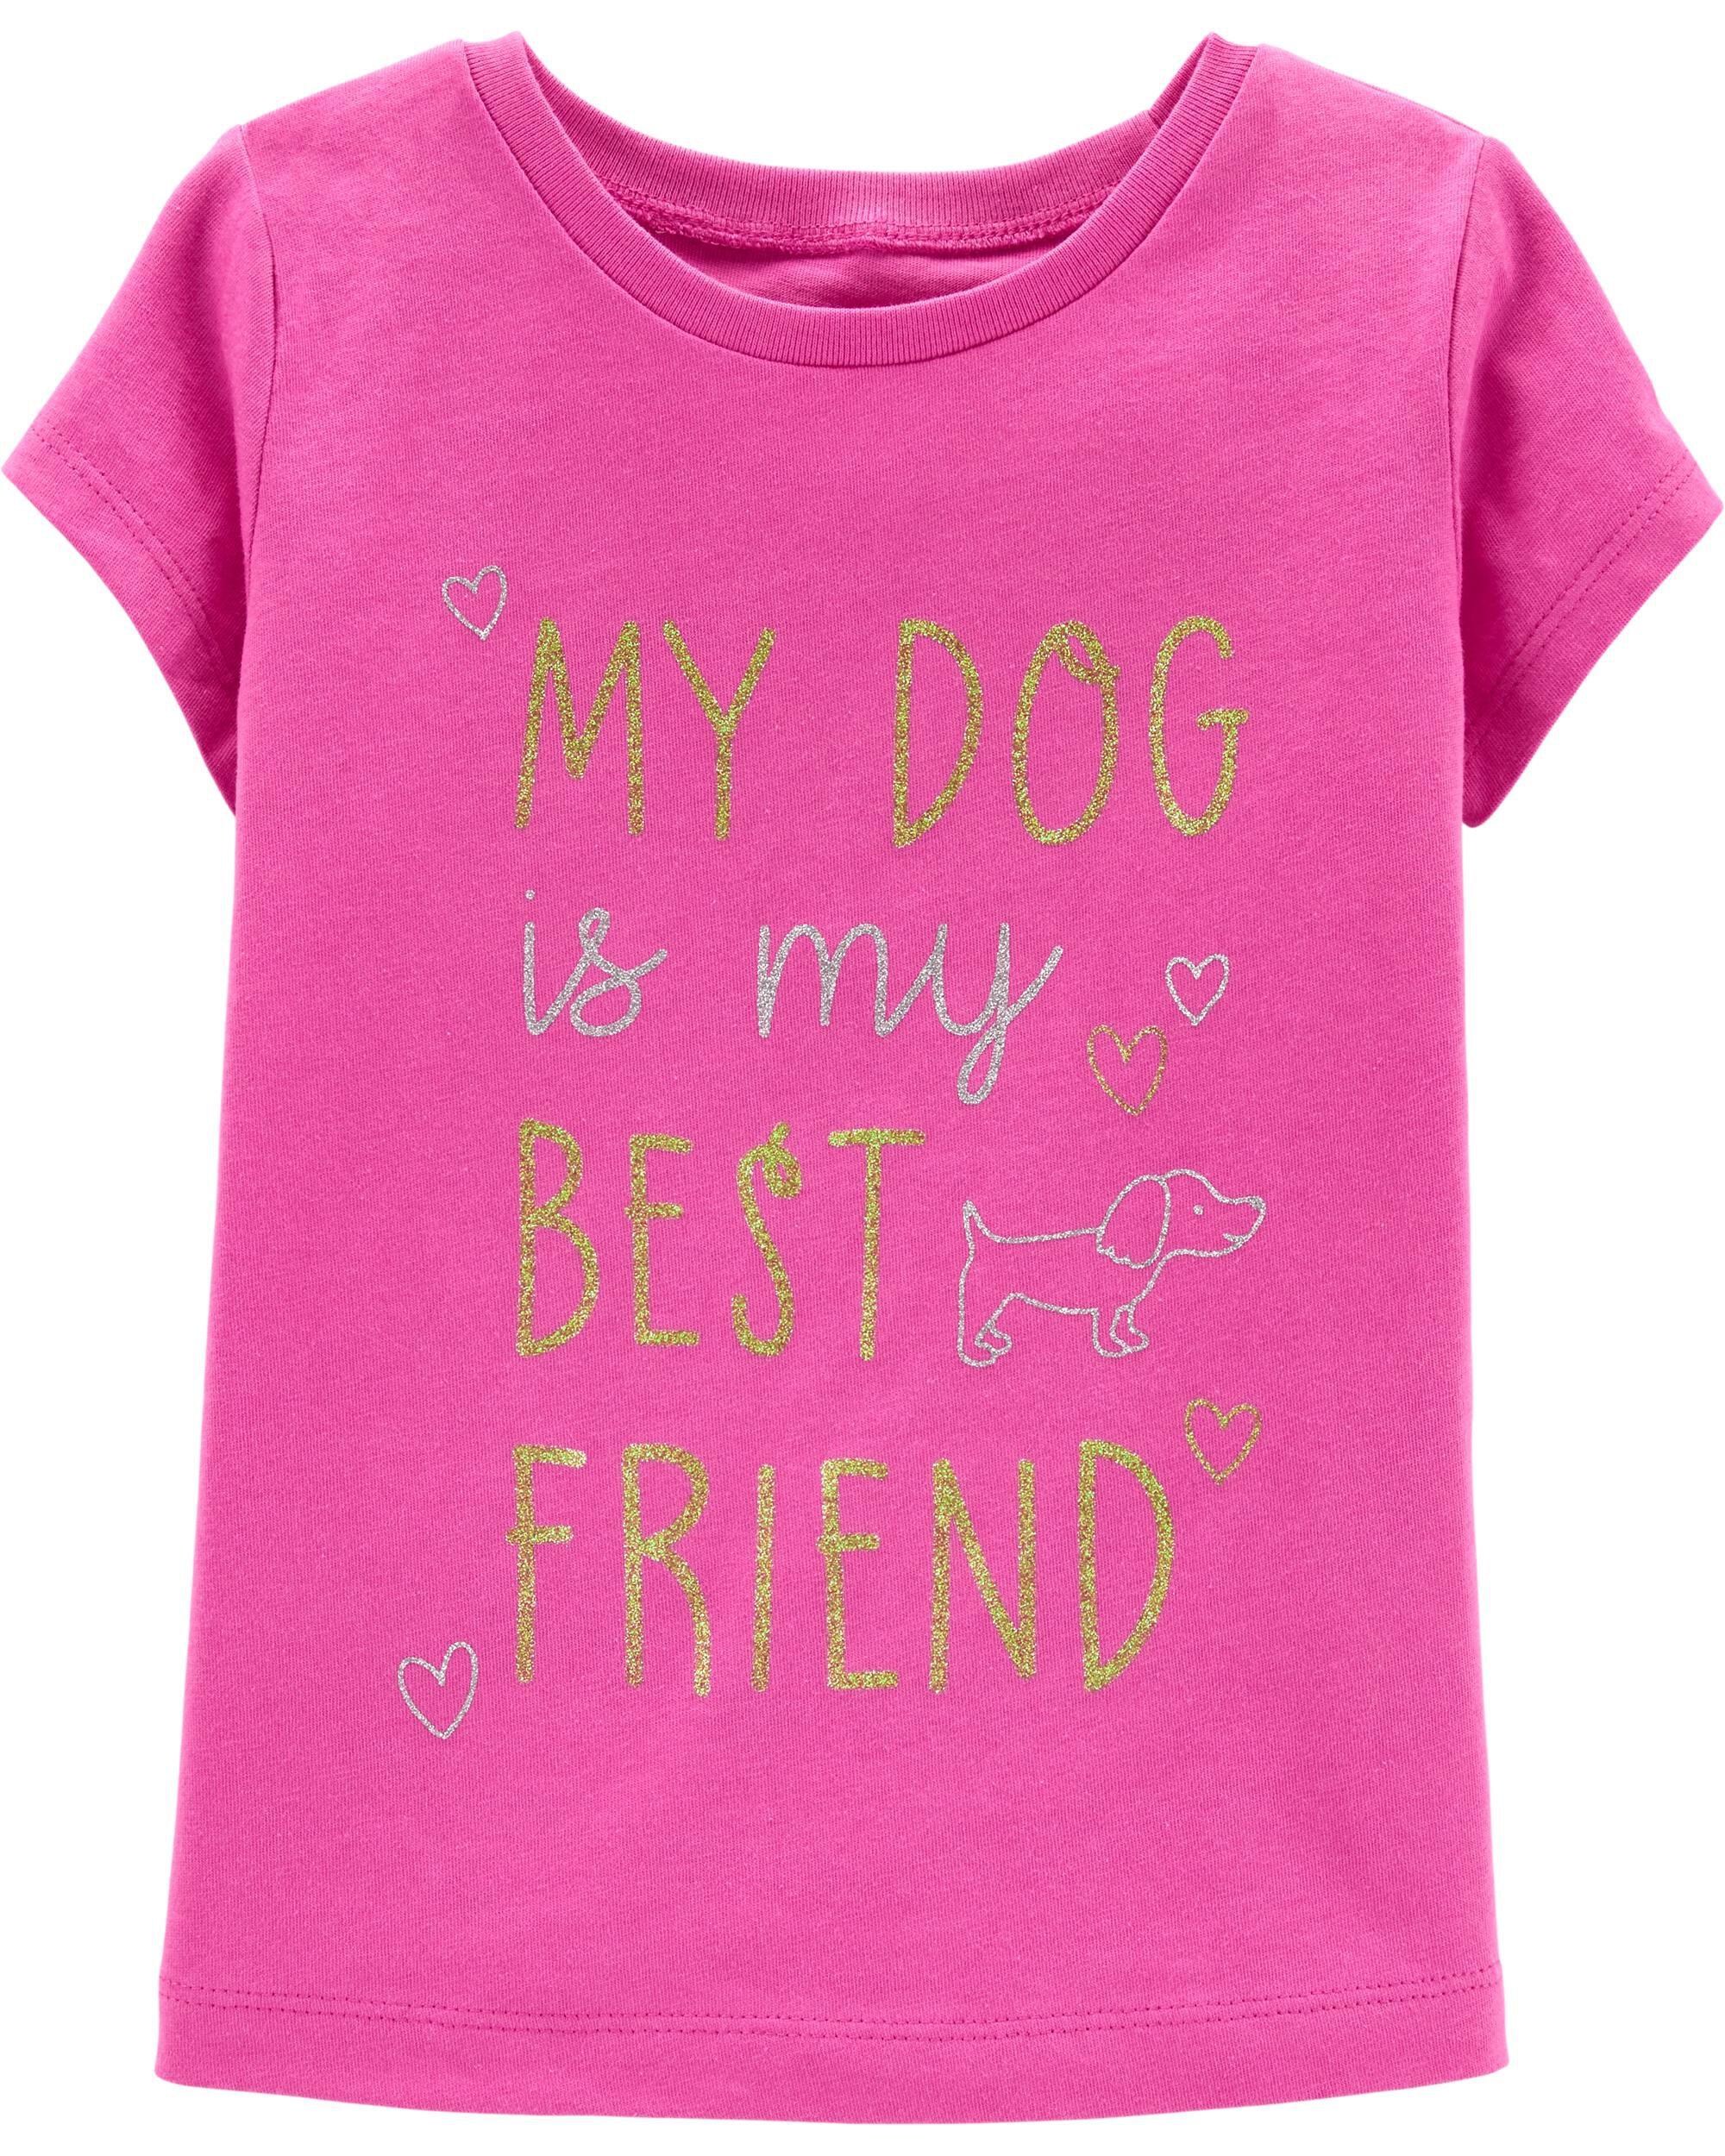 *Clearance*  My Dog Is My Best Friend Jersey Tee